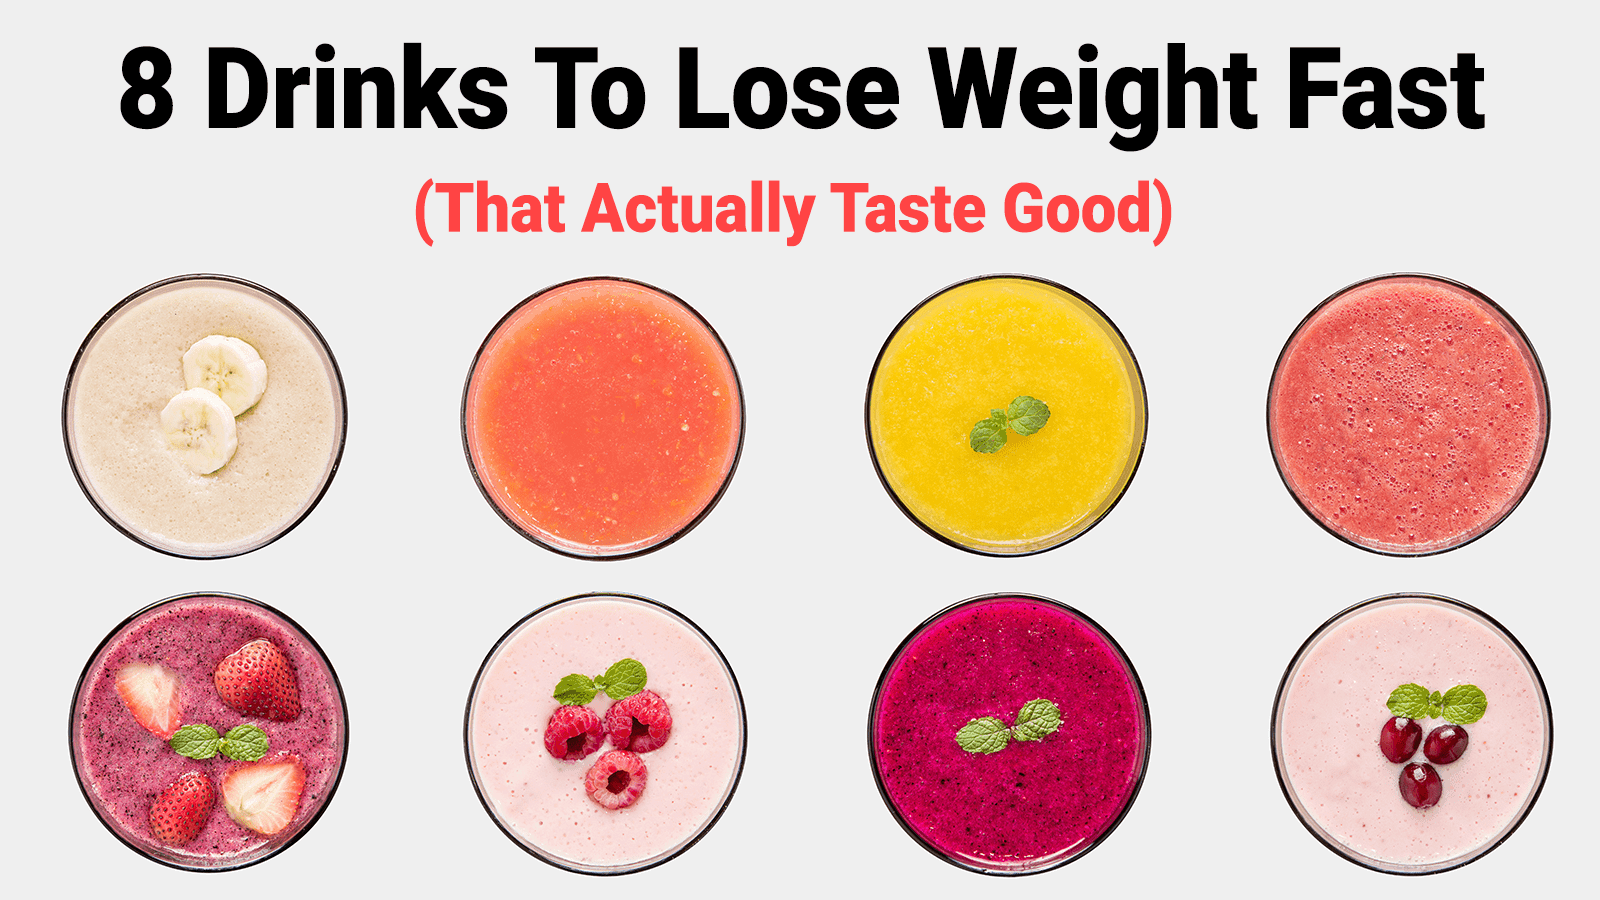 8 Drinks To Lose Weight Fast That Actually Taste Good